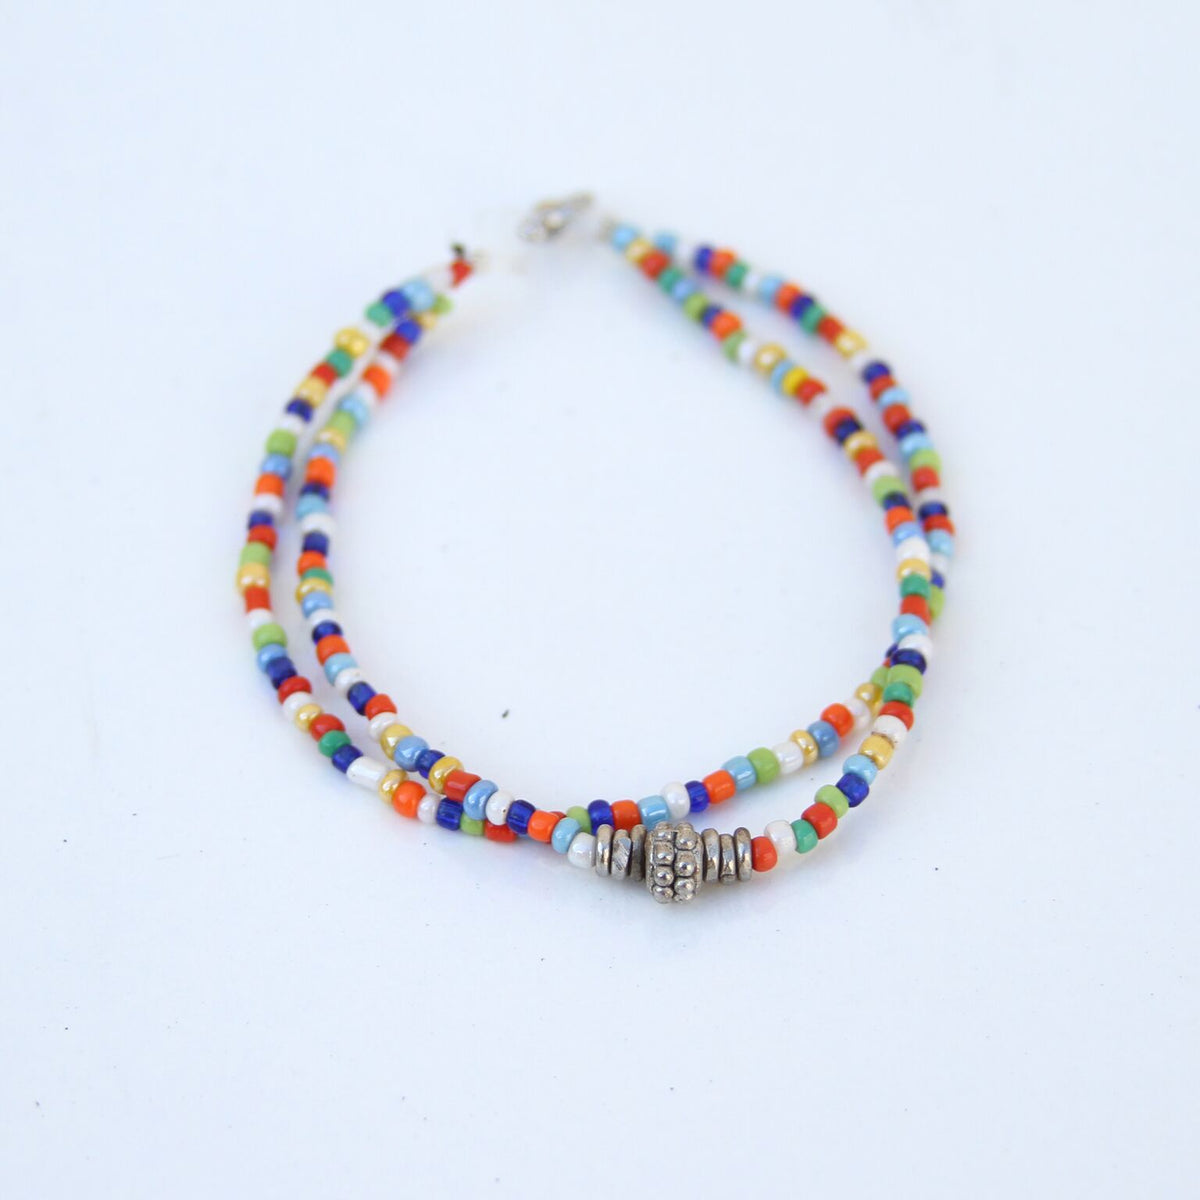 Handmade Multi-Colored Bracelet